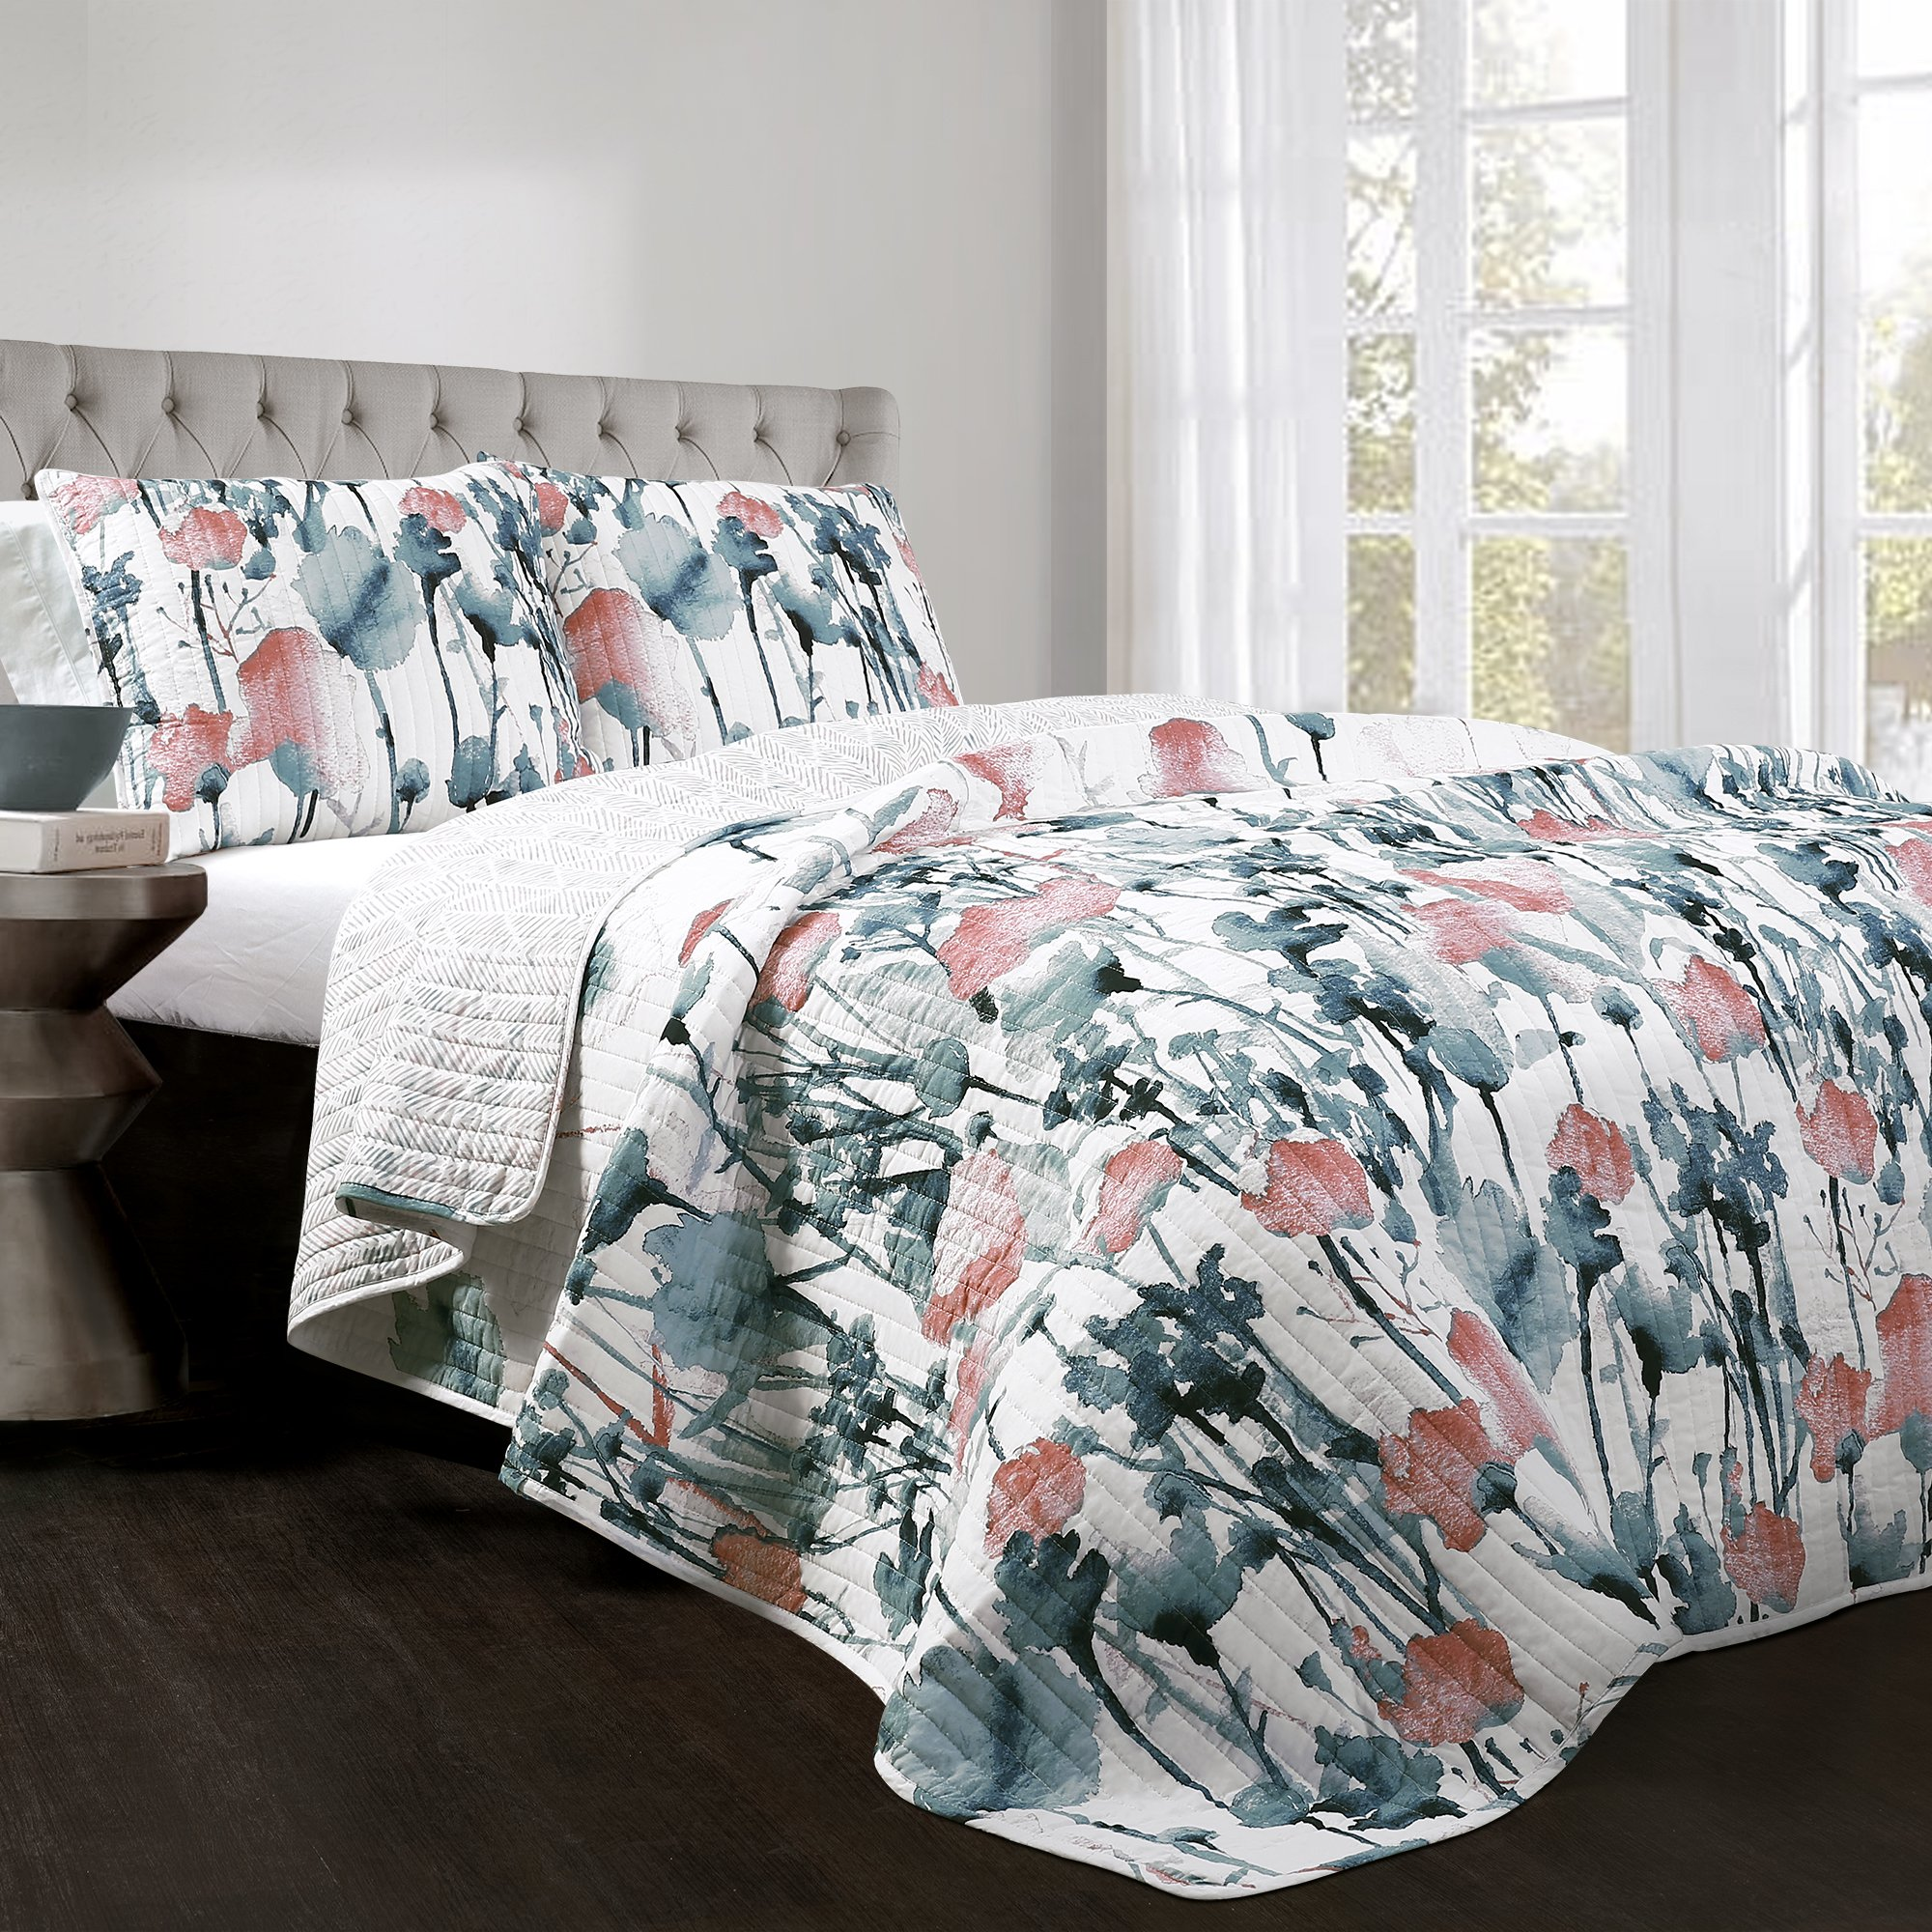 Lush Decor Zuri Flora 3 Piece Quilt Set, Full/Queen, Blue and Coral